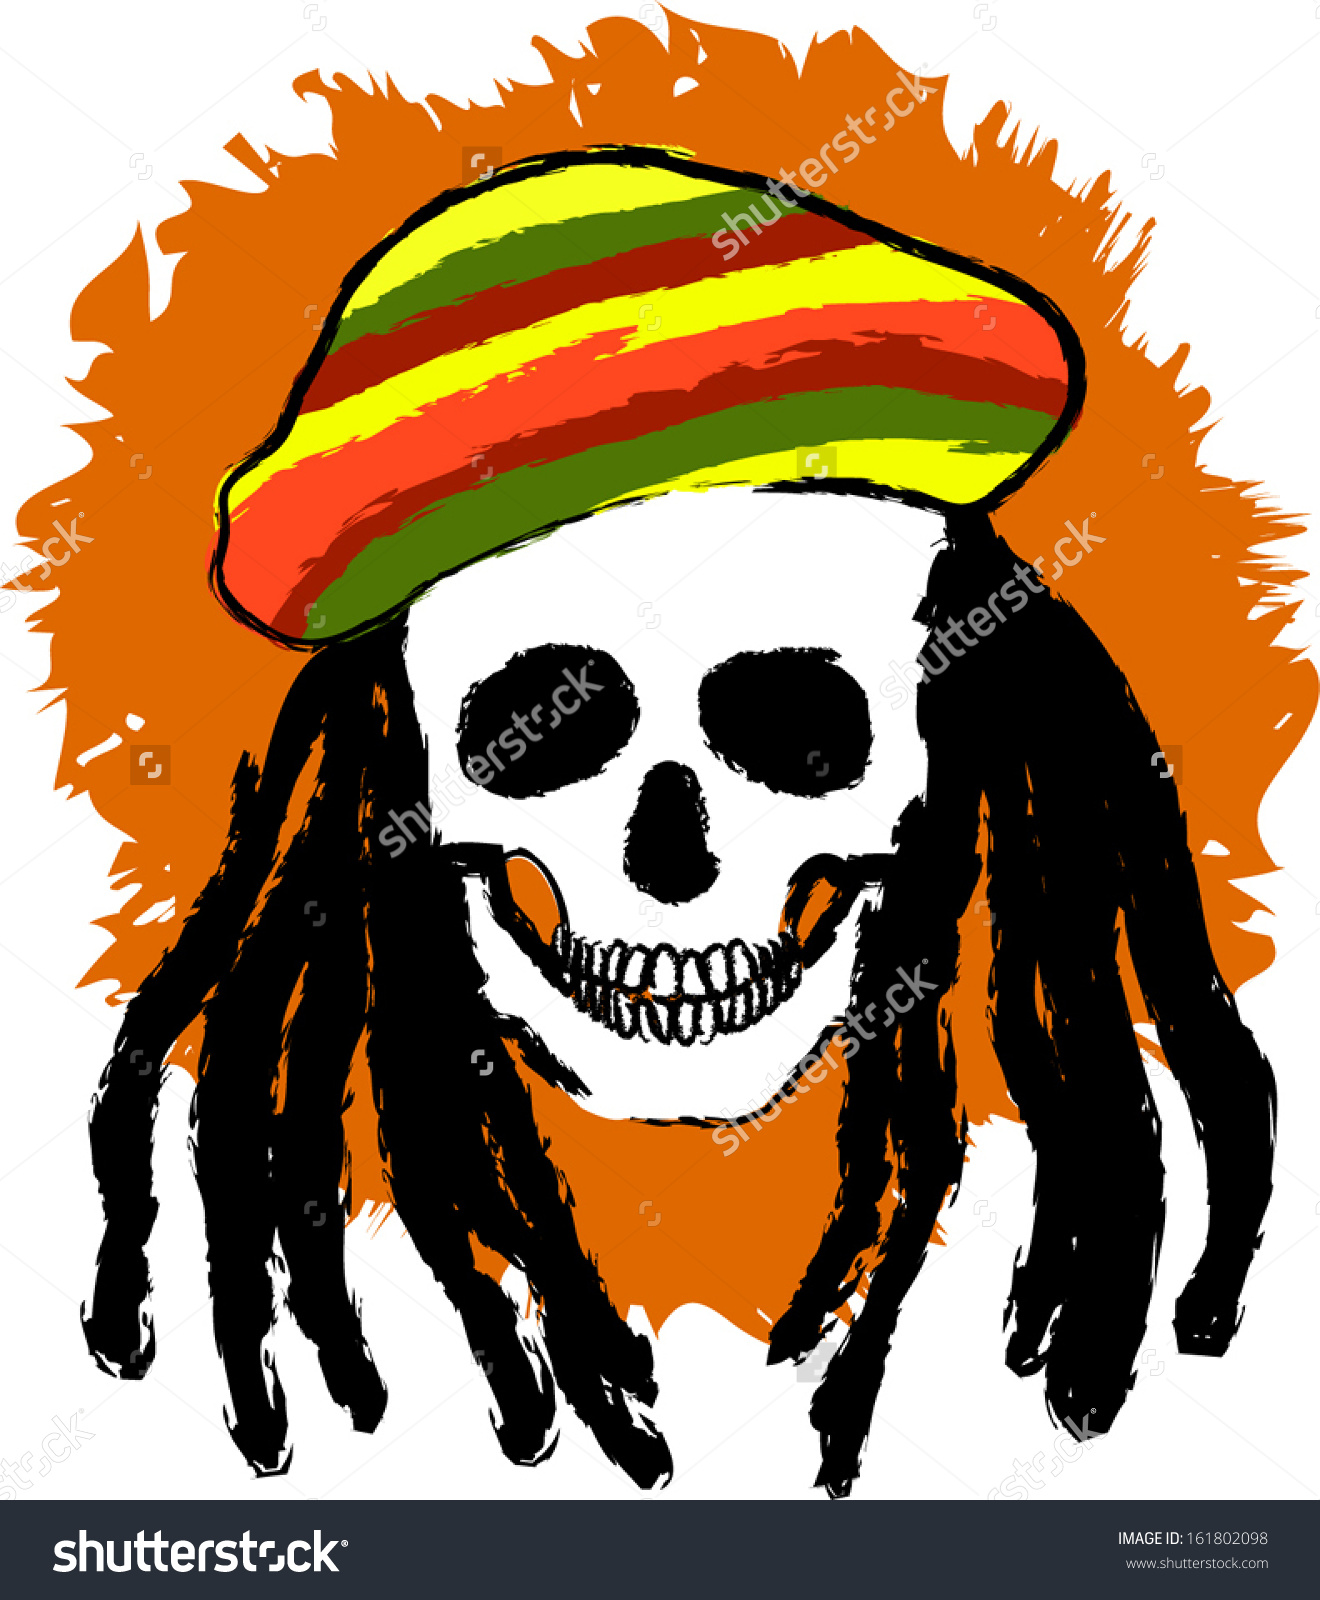 Dreadlocks Skull Rastacap Eps 10 Stock Vector 161802098.